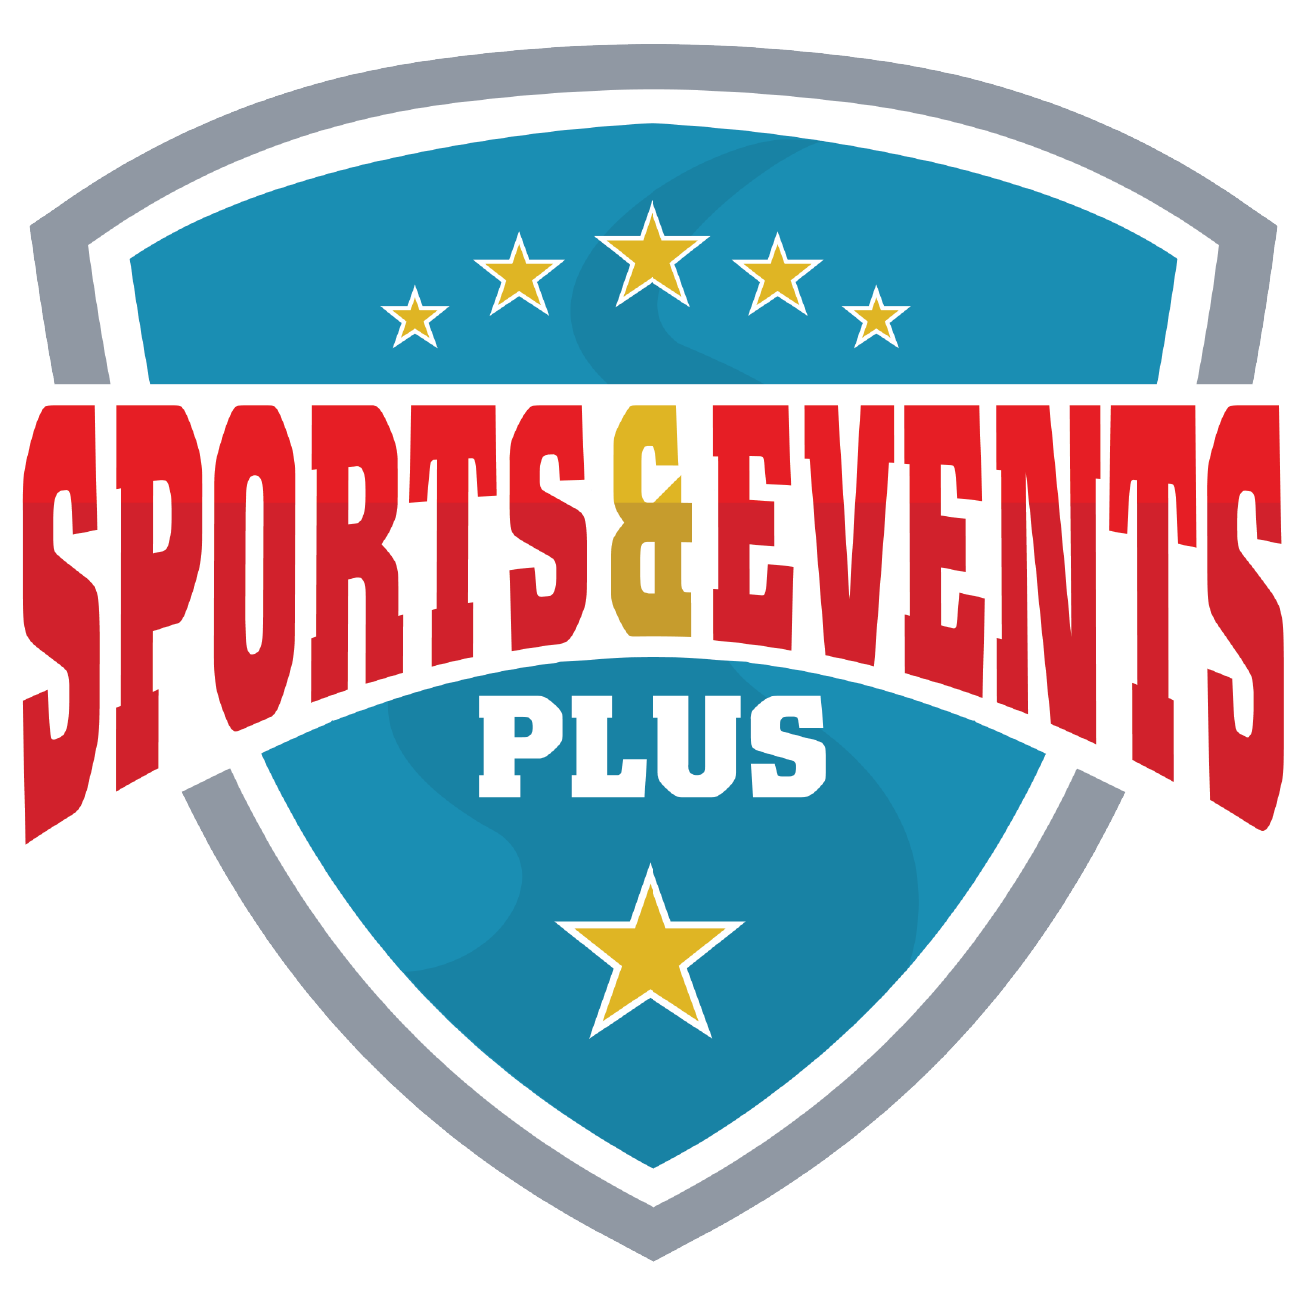 Sports & Events Plus logo